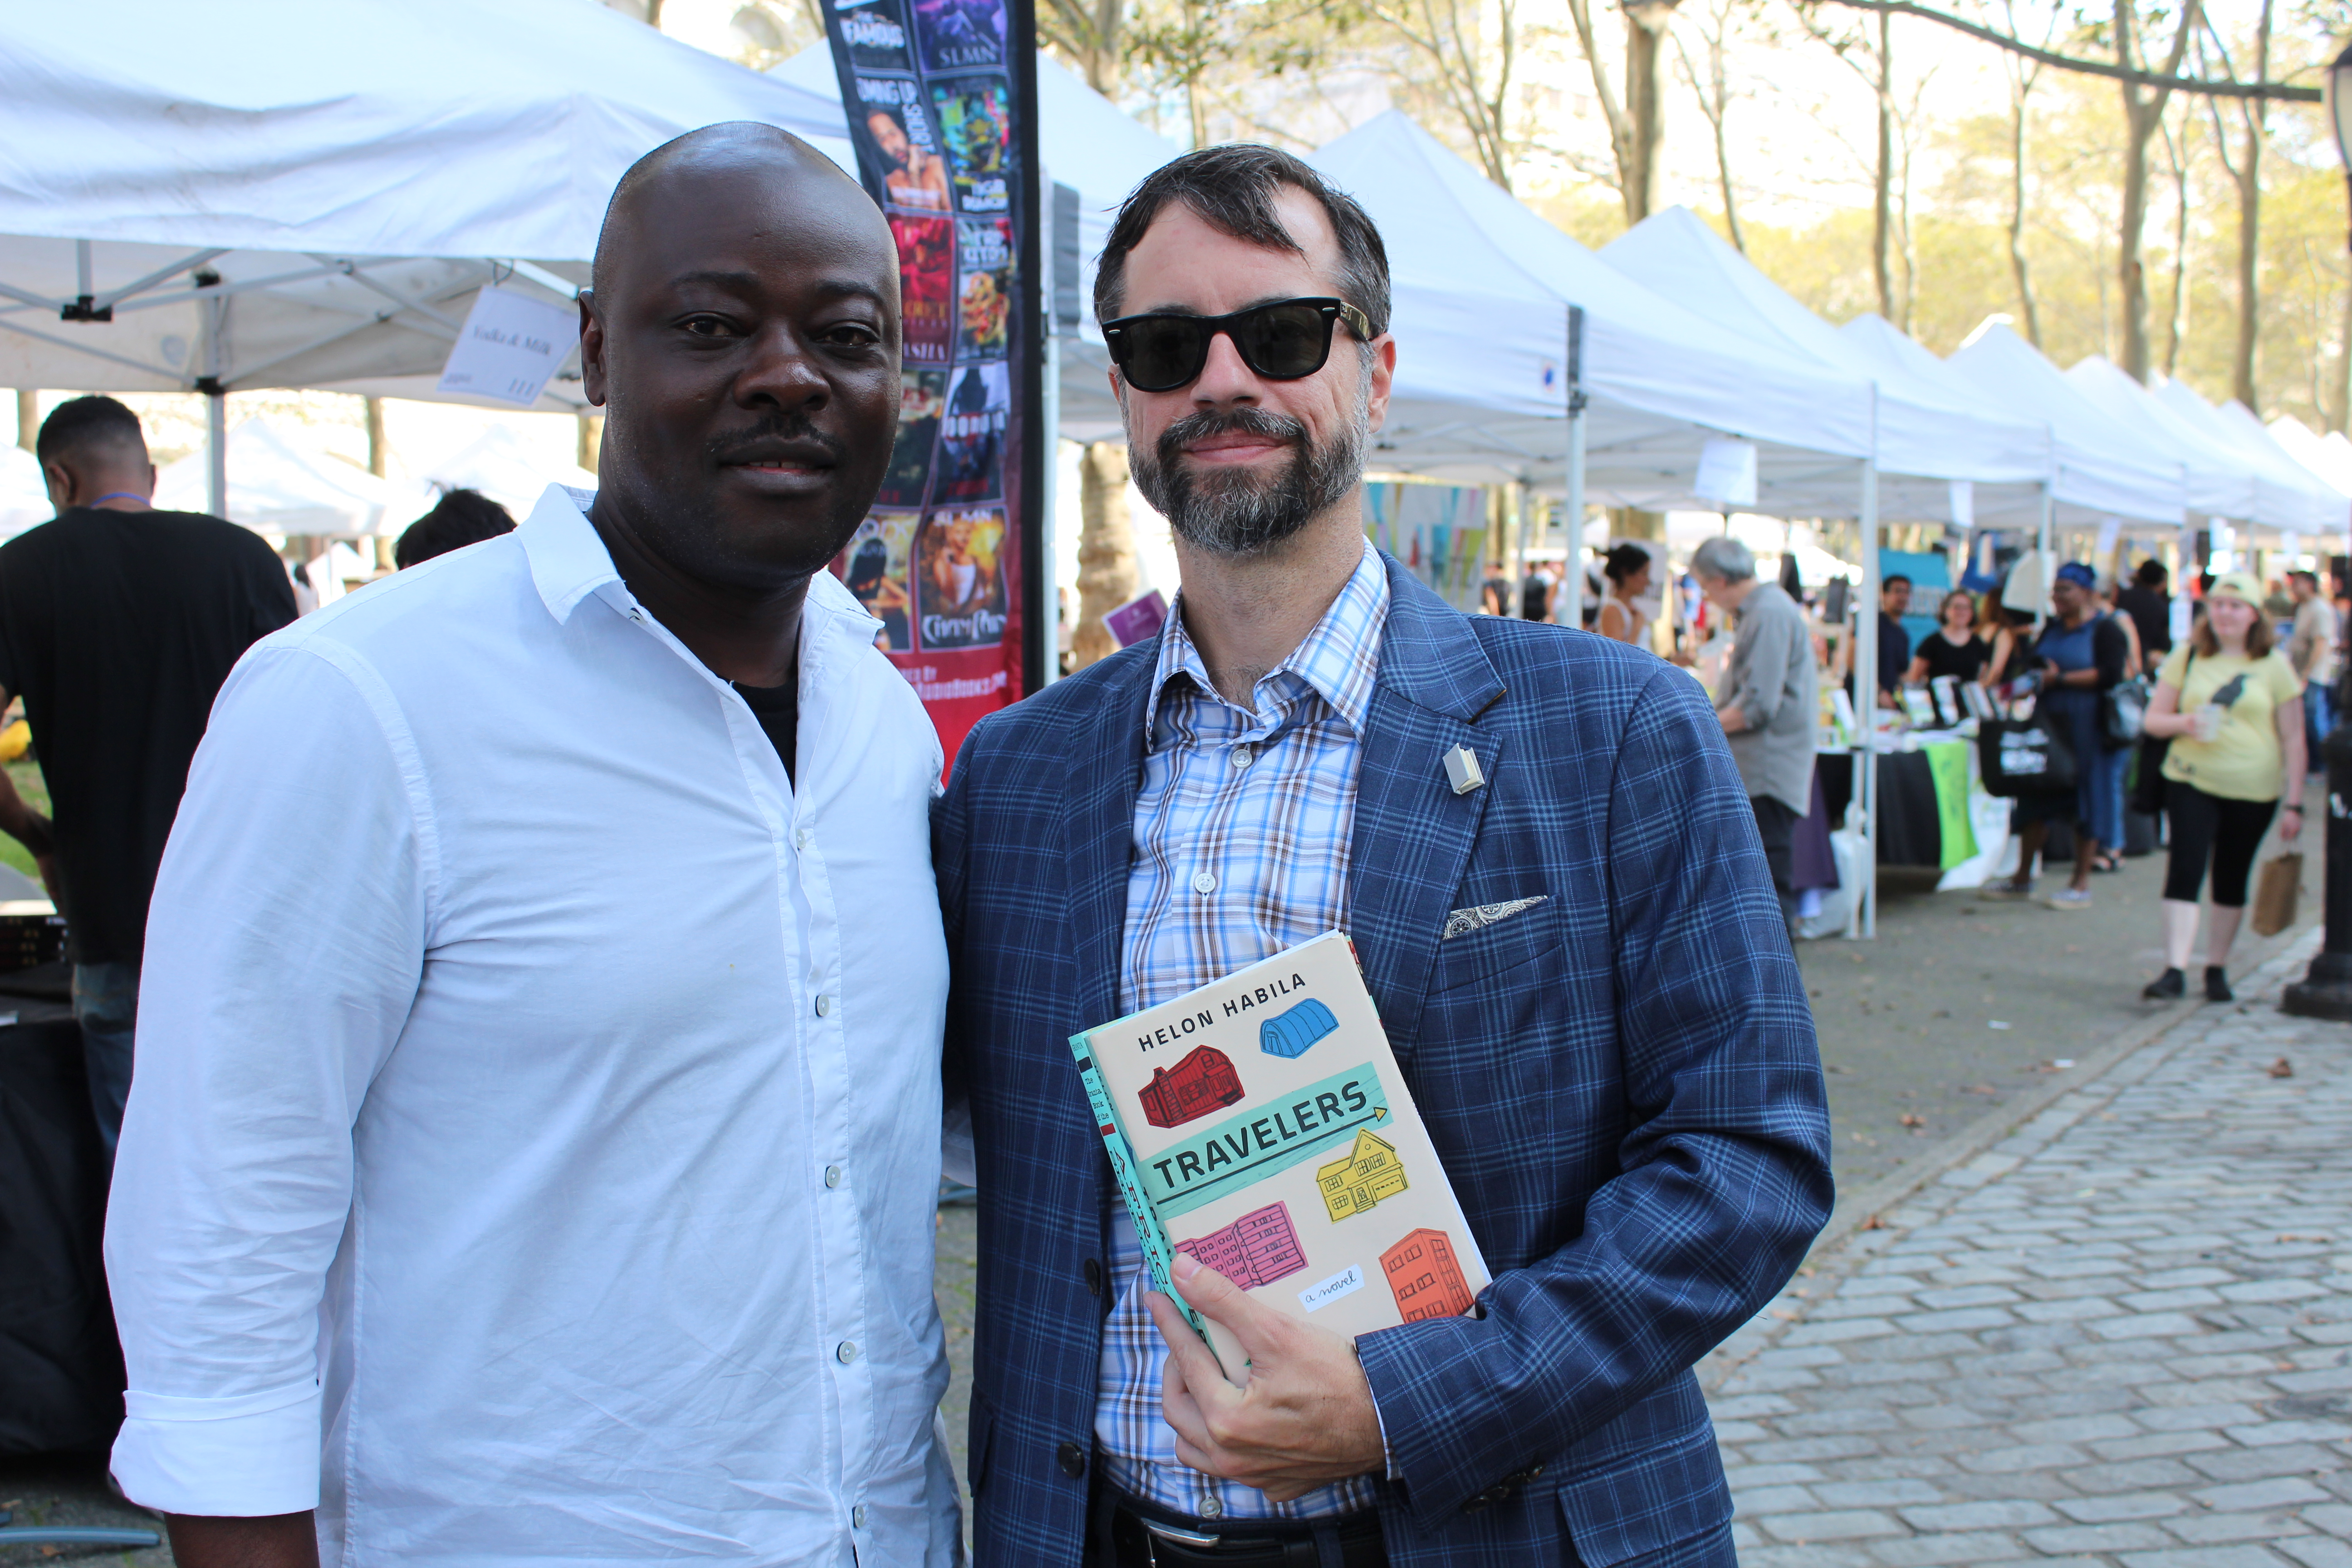 Helon Habila and Shaun Randol